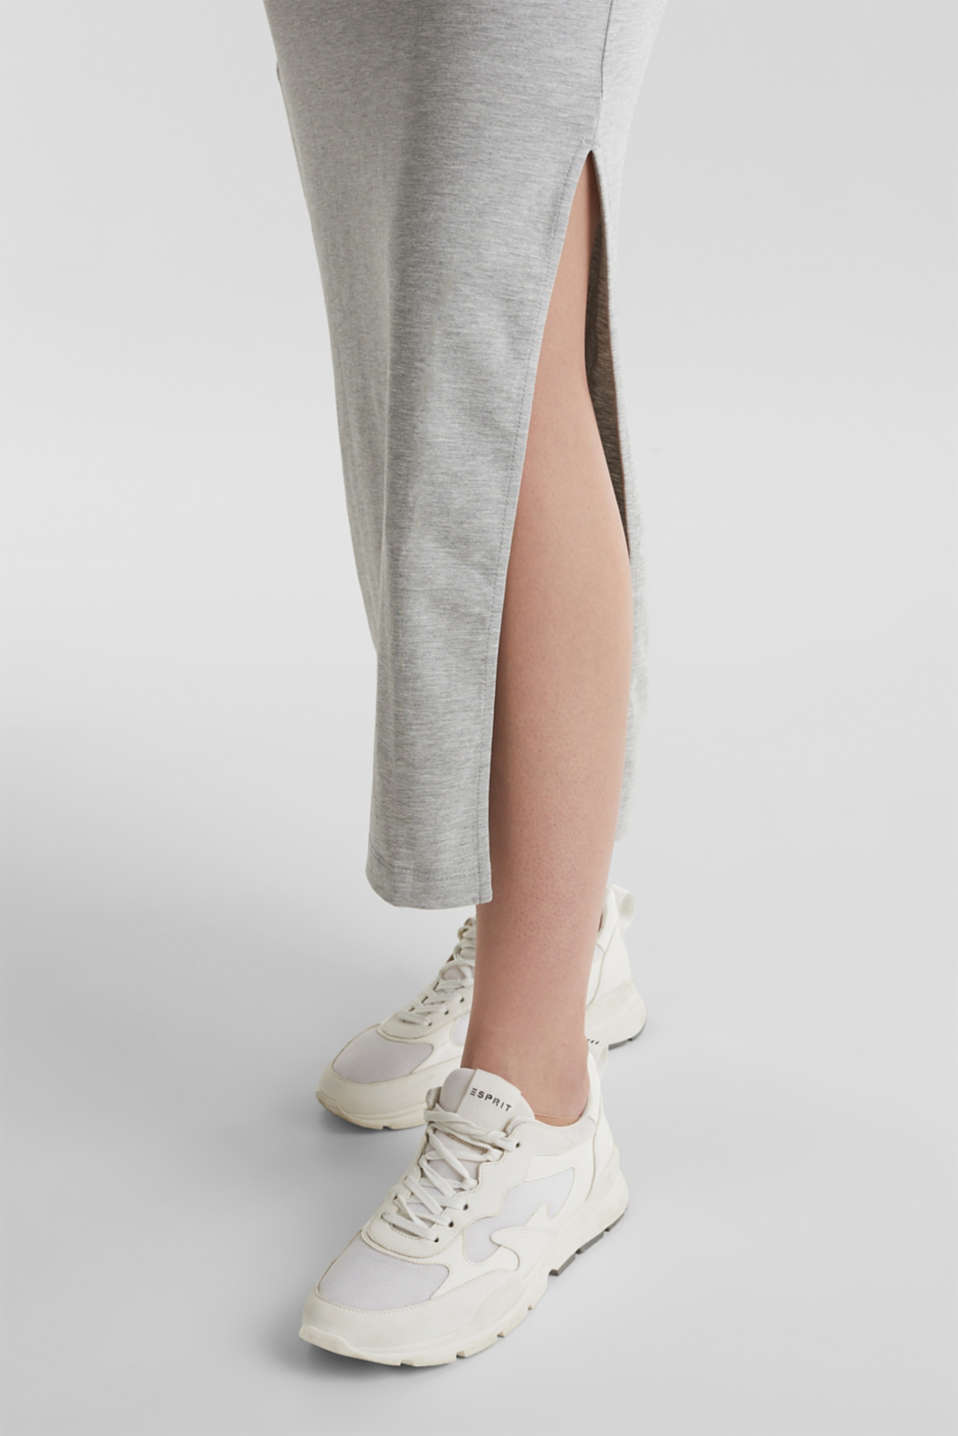 Stretch jersey skirt, LIGHT GREY 5, detail image number 2